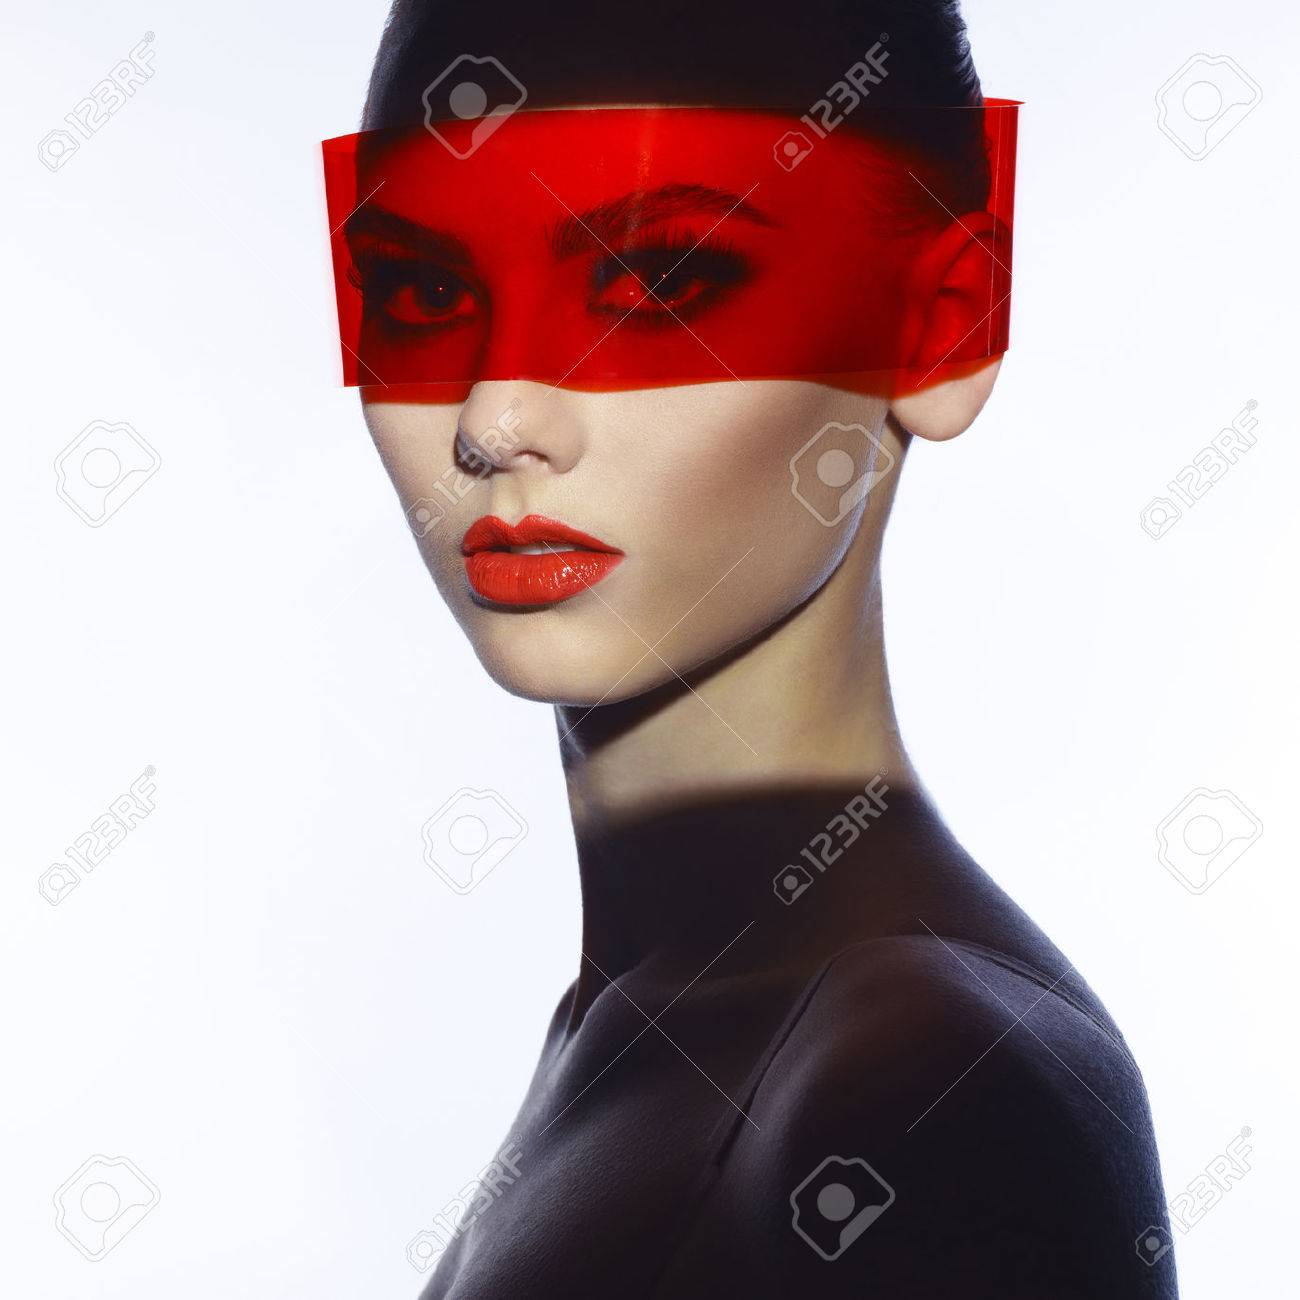 Fashion art studio photo of beautiful elegant futuristic lady Standard-Bild - 40572217